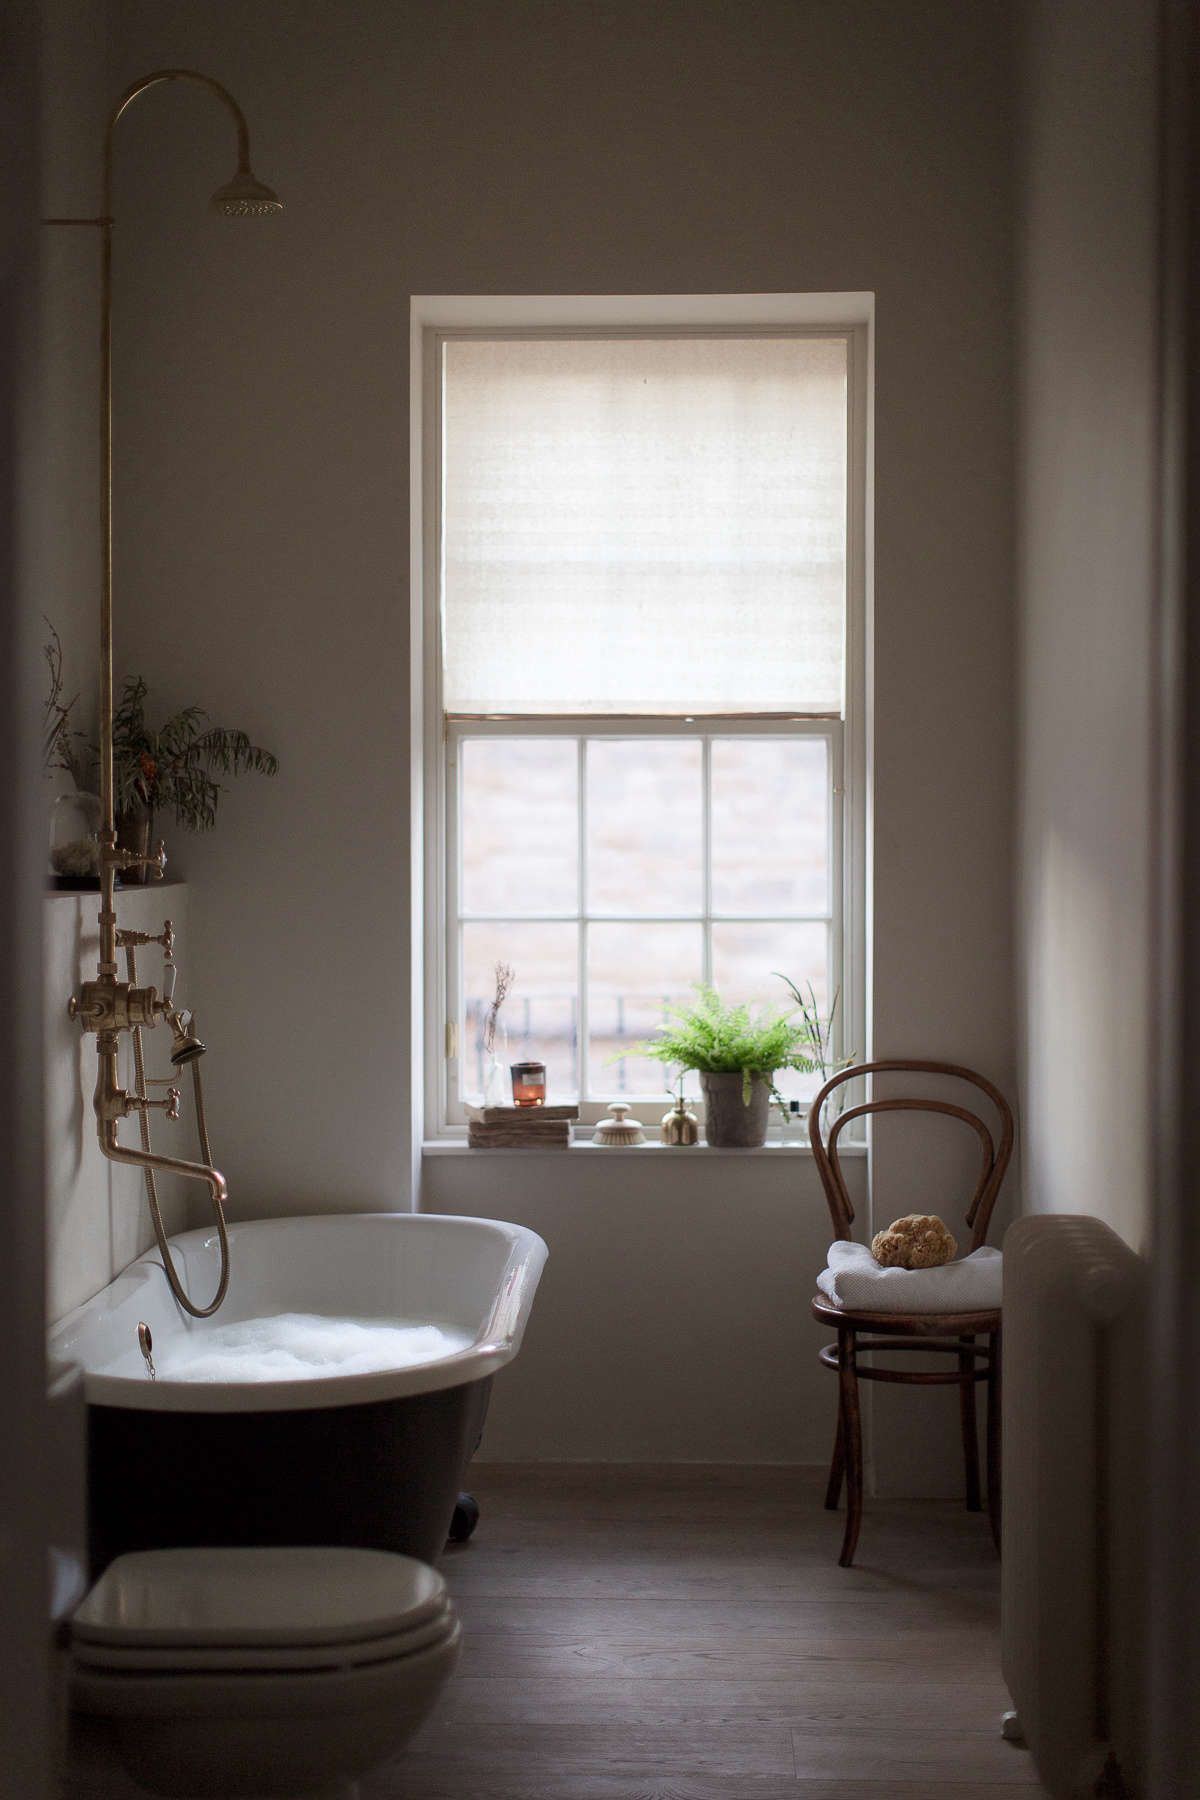 The couple converted a bedroom into the master bath. The new roll-top bathtub was purchased from C.P. Hart and painted Farrow & Ball&#8